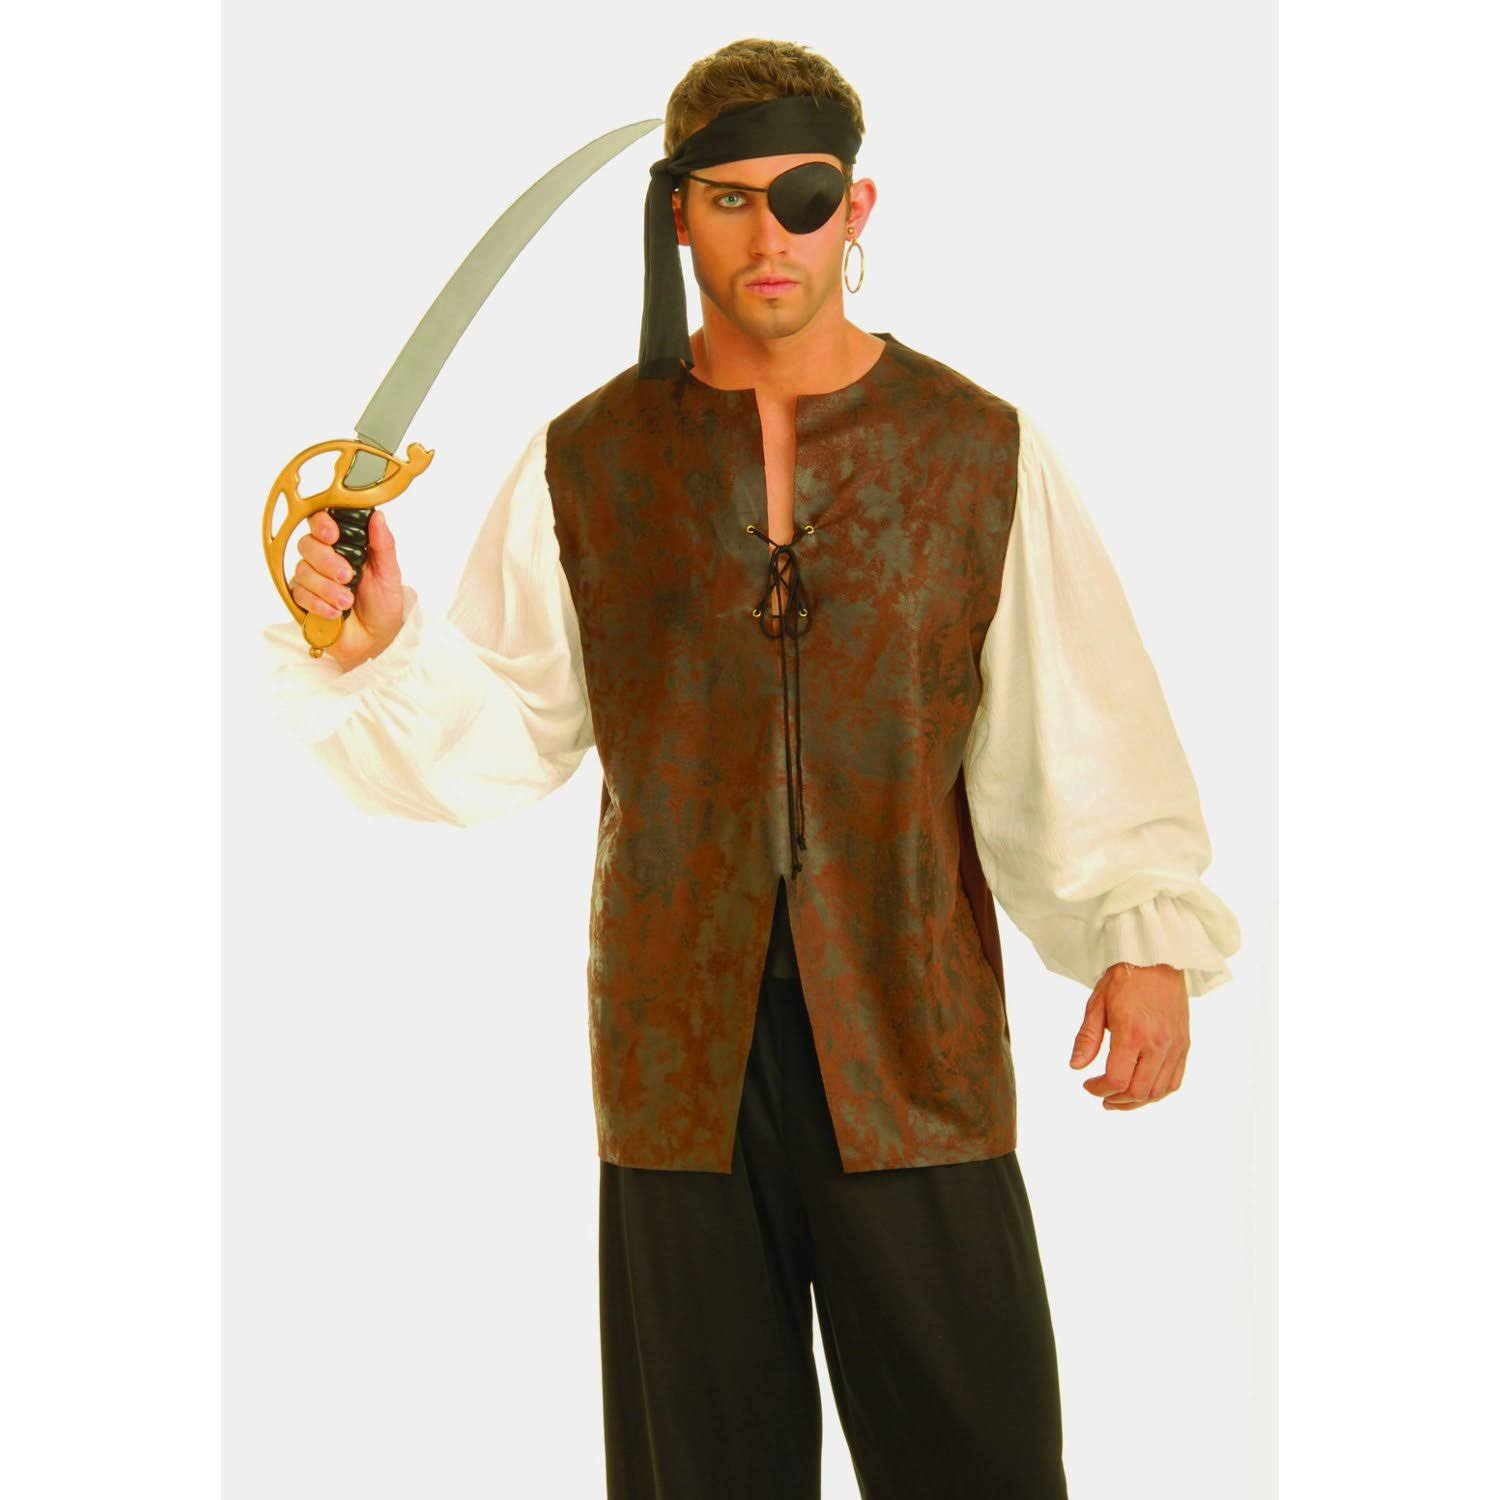 Buccaneer Shirt Adult Costume (XL)